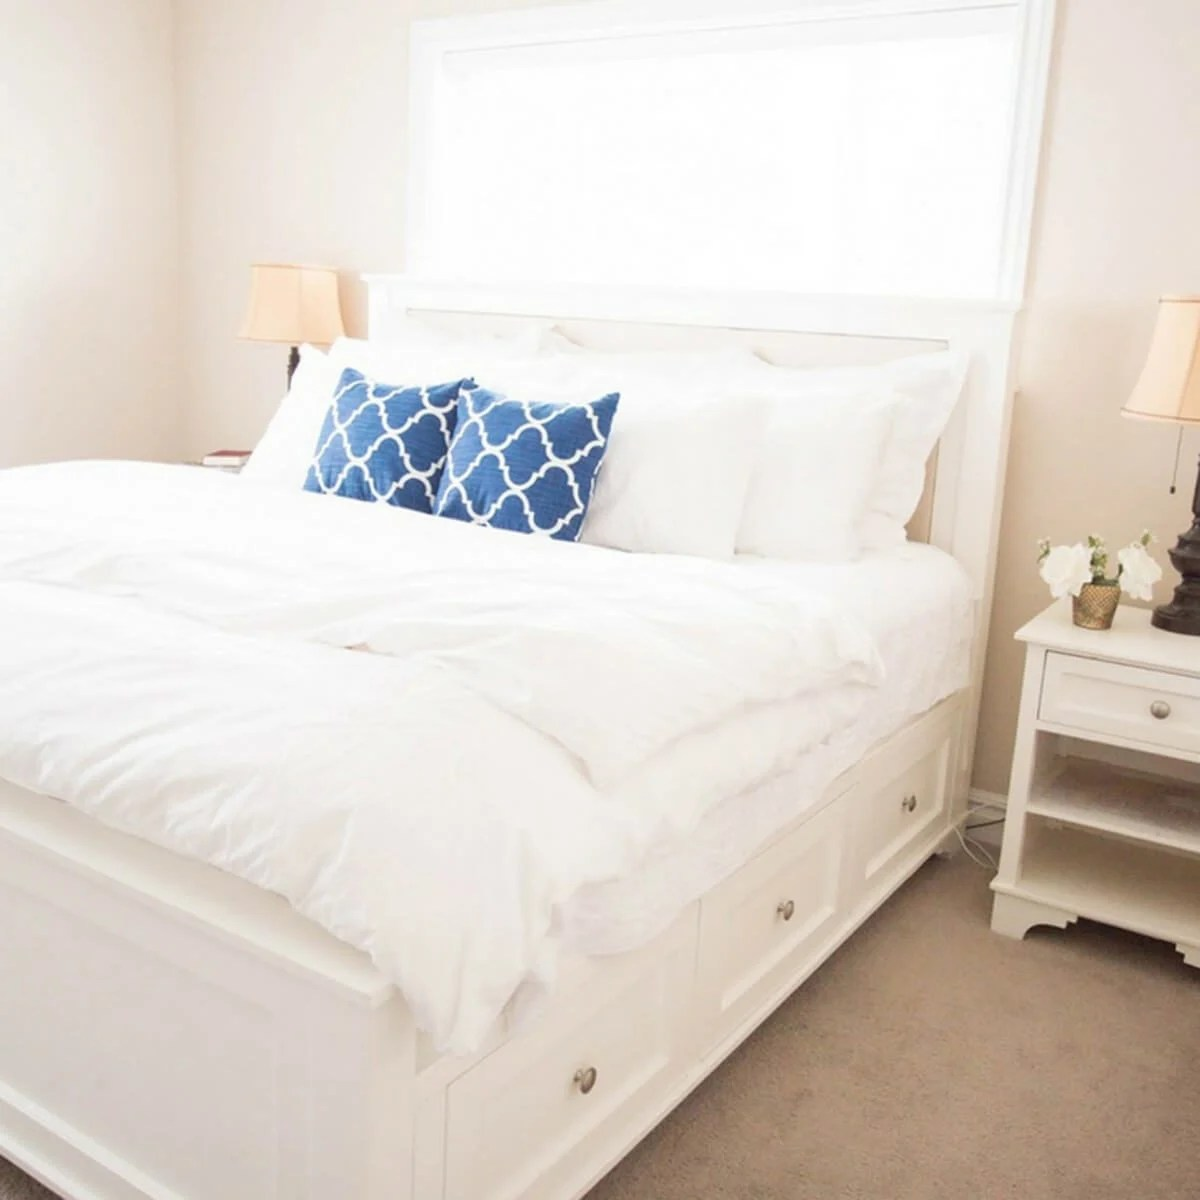 11 Great DIY Bed Frame Plans and Ideas     The Family Handyman Pottery Barn Style DIY Bed Frame with Storage